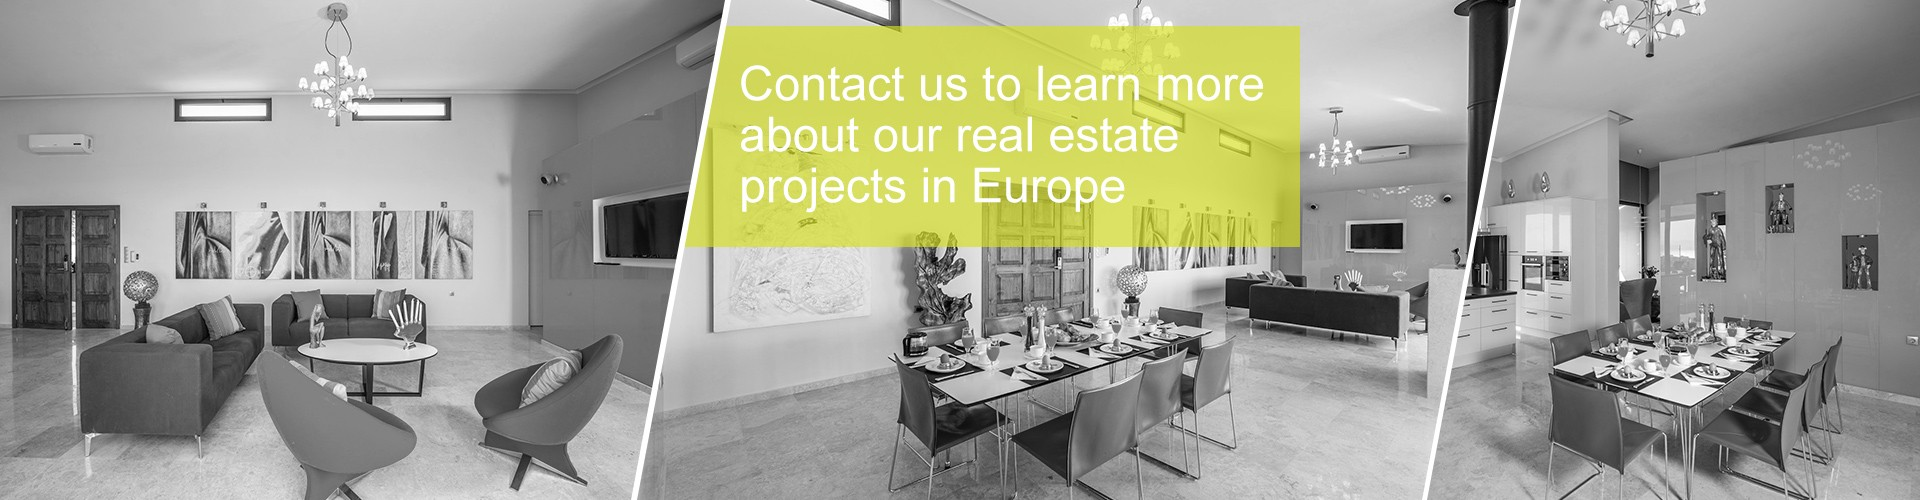 Welcome to Arzumanidis Investments. Contact us to learn more about our real estate projects in Europe